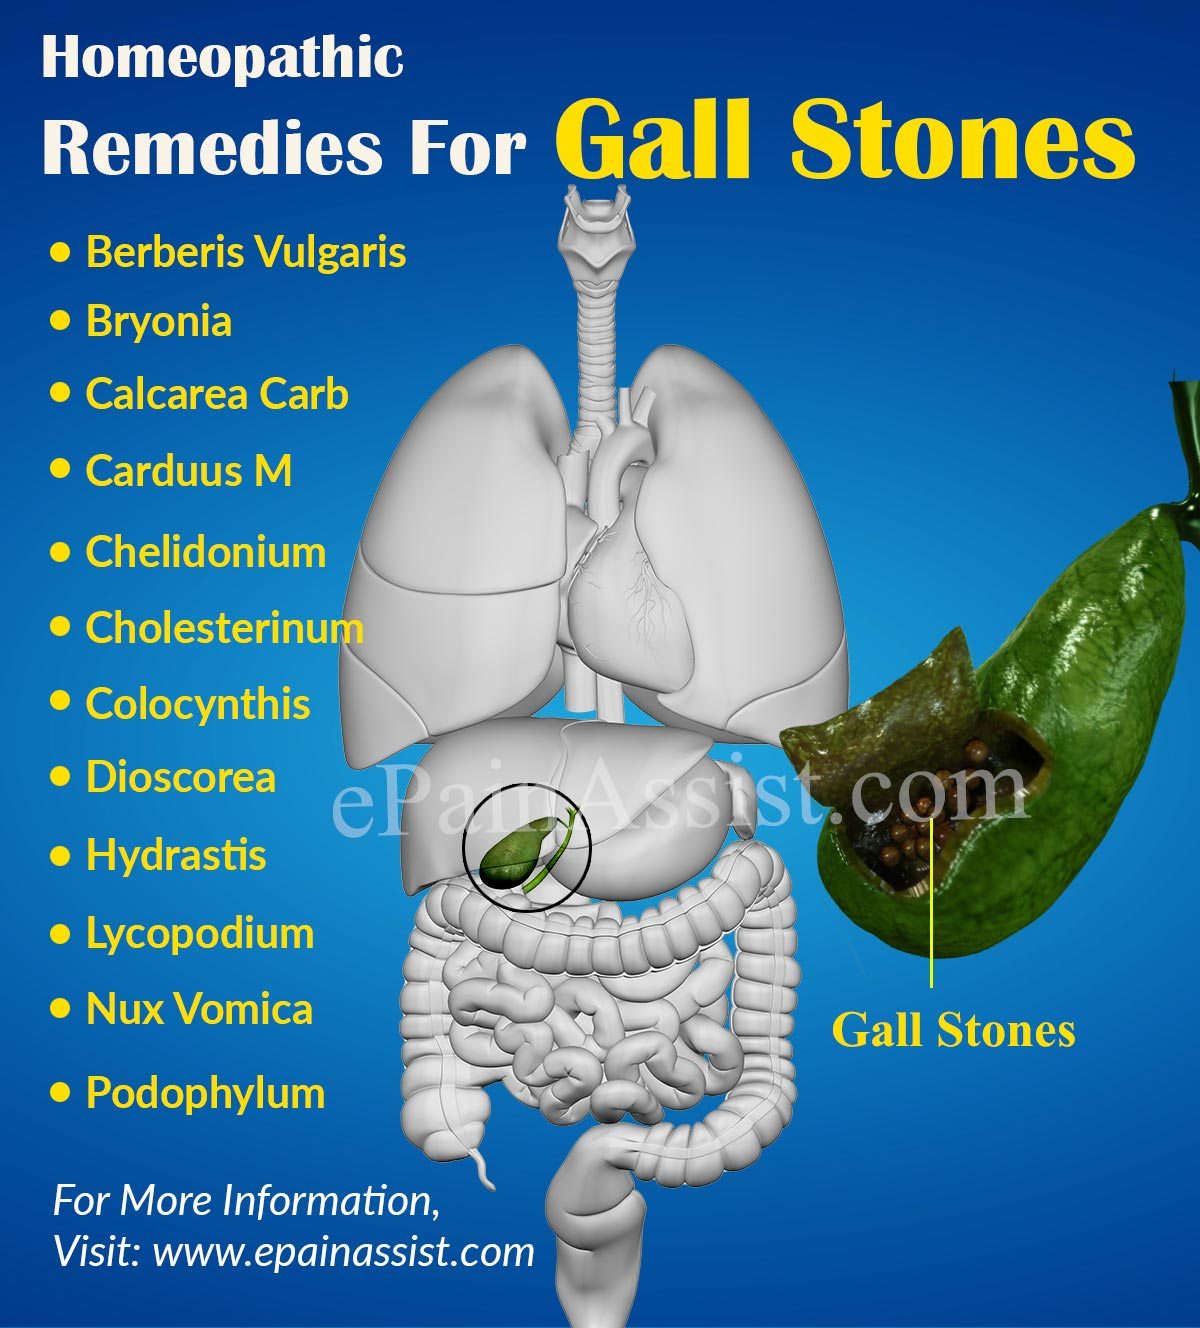 Homeopathic Remedies For Gall Stones Cholelithiasis